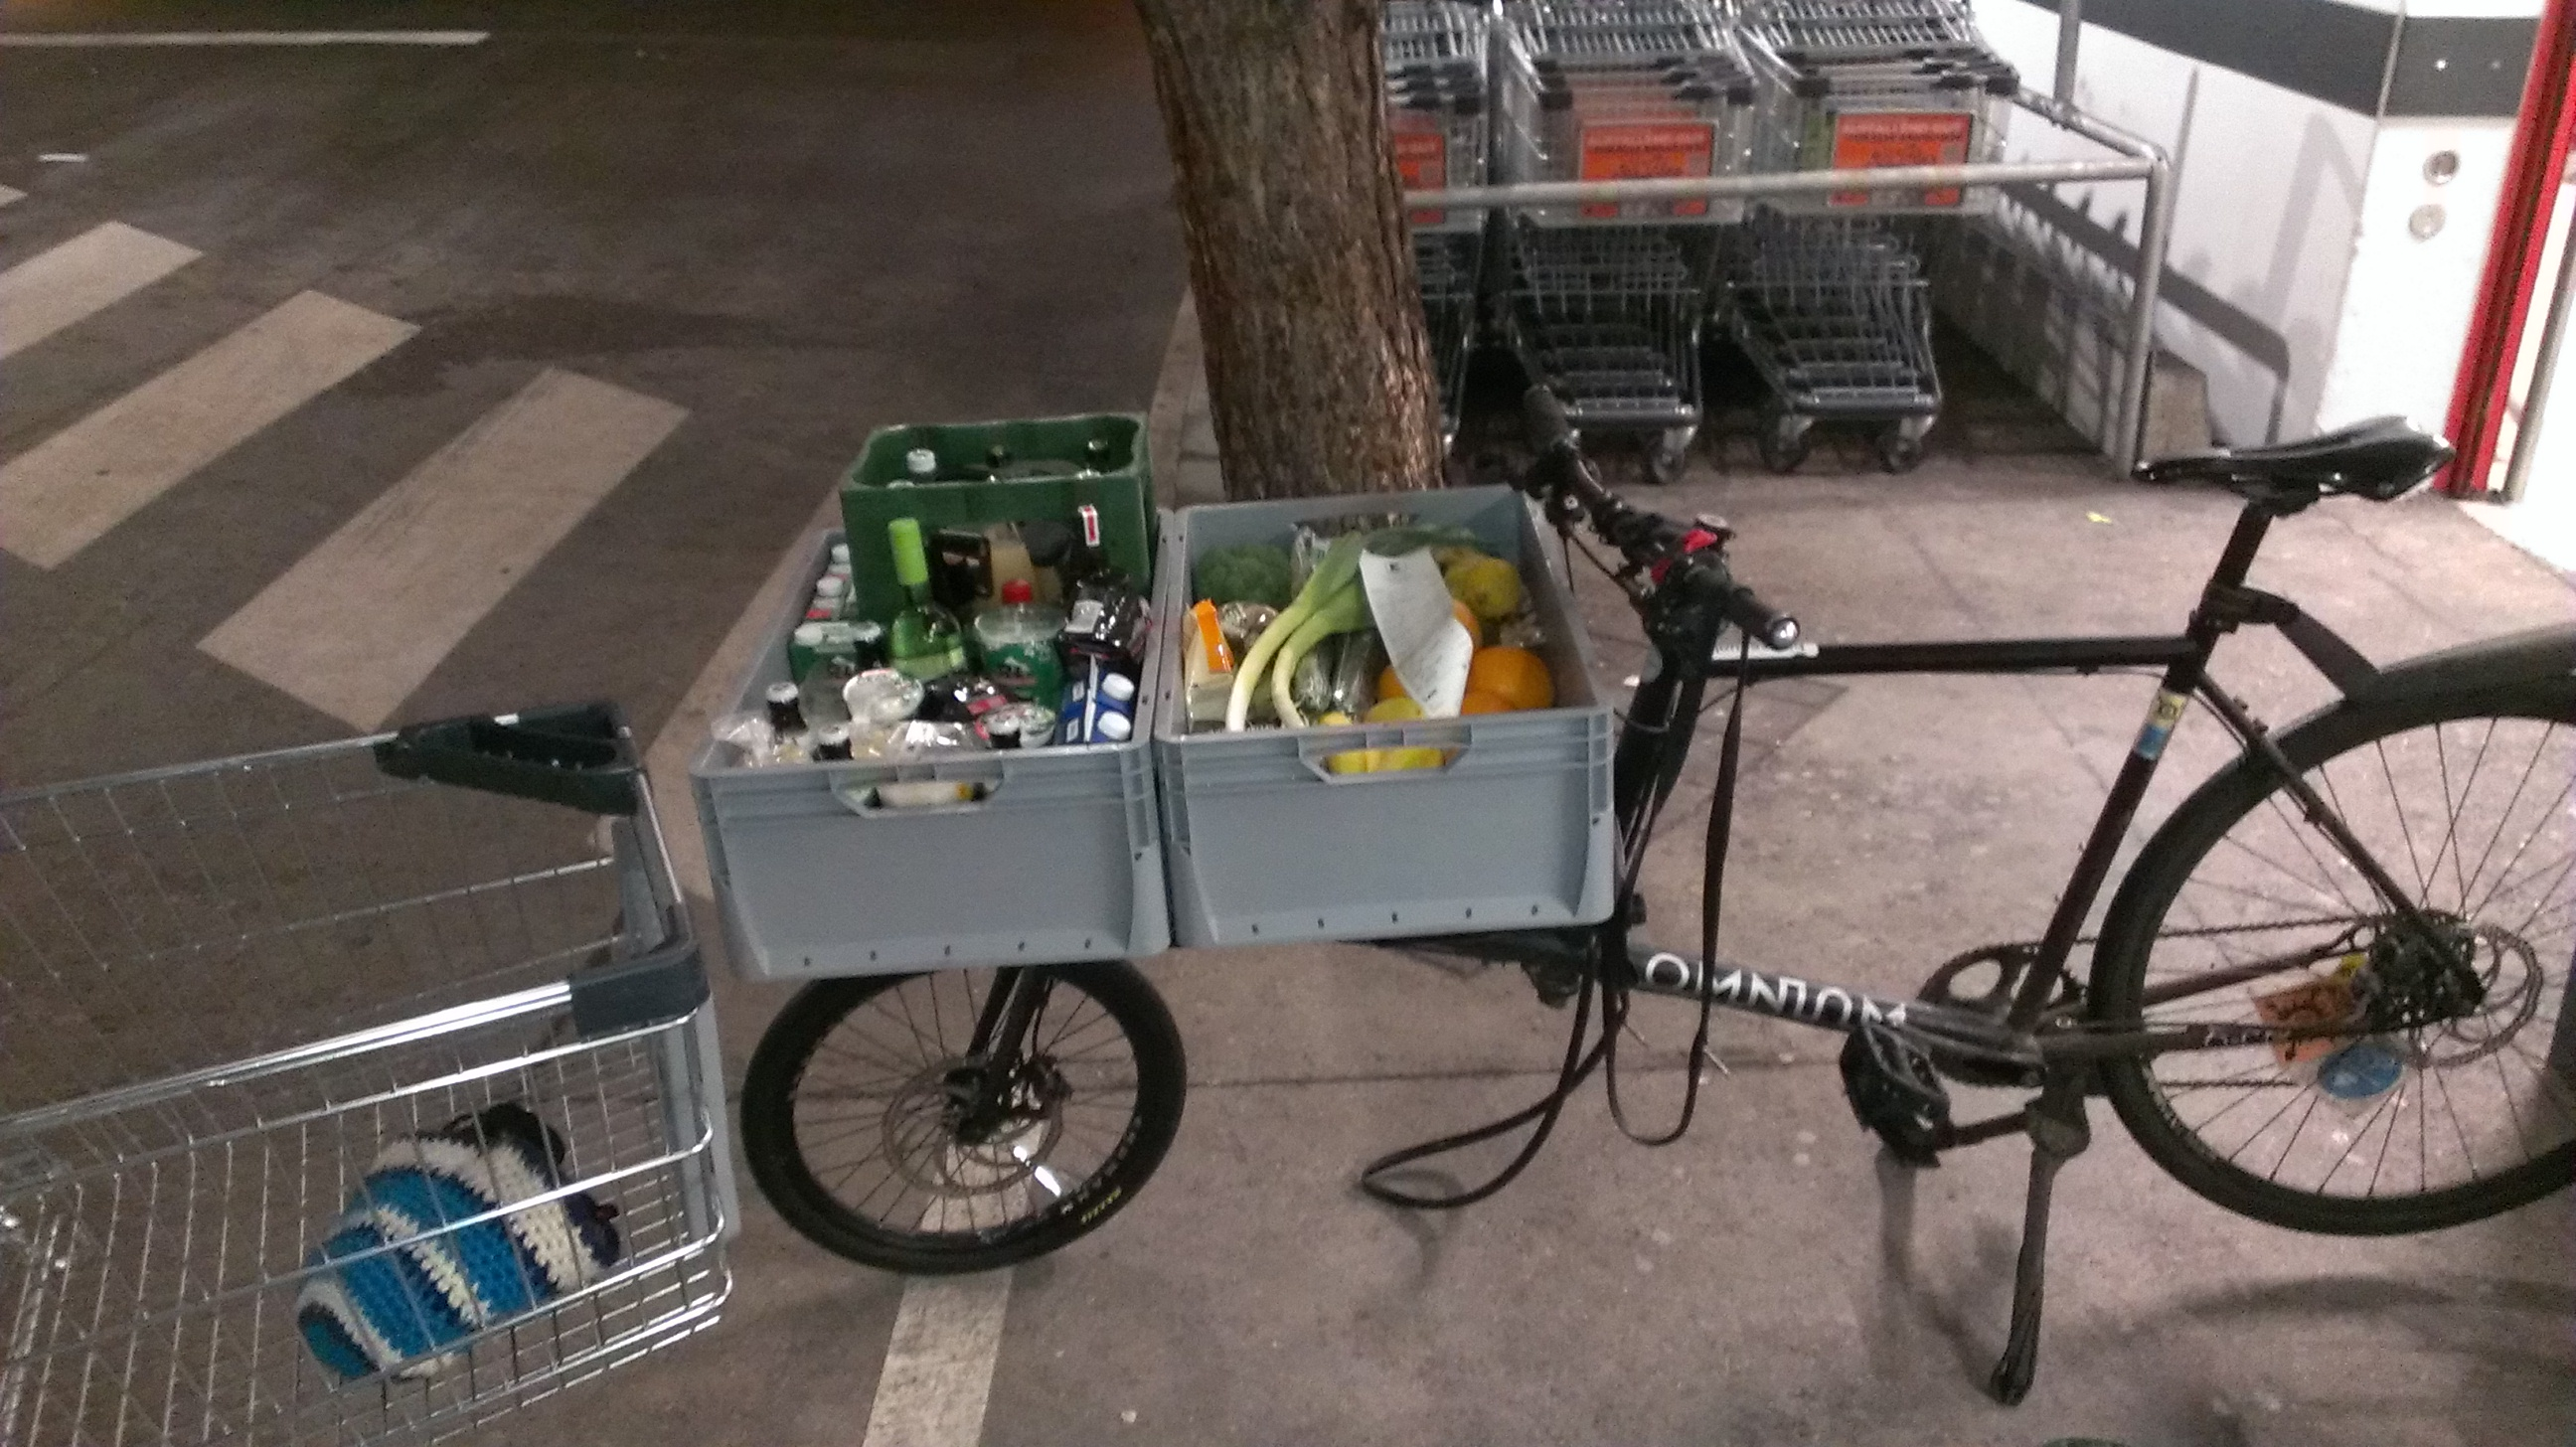 omnium cargo bike loaded with groceries